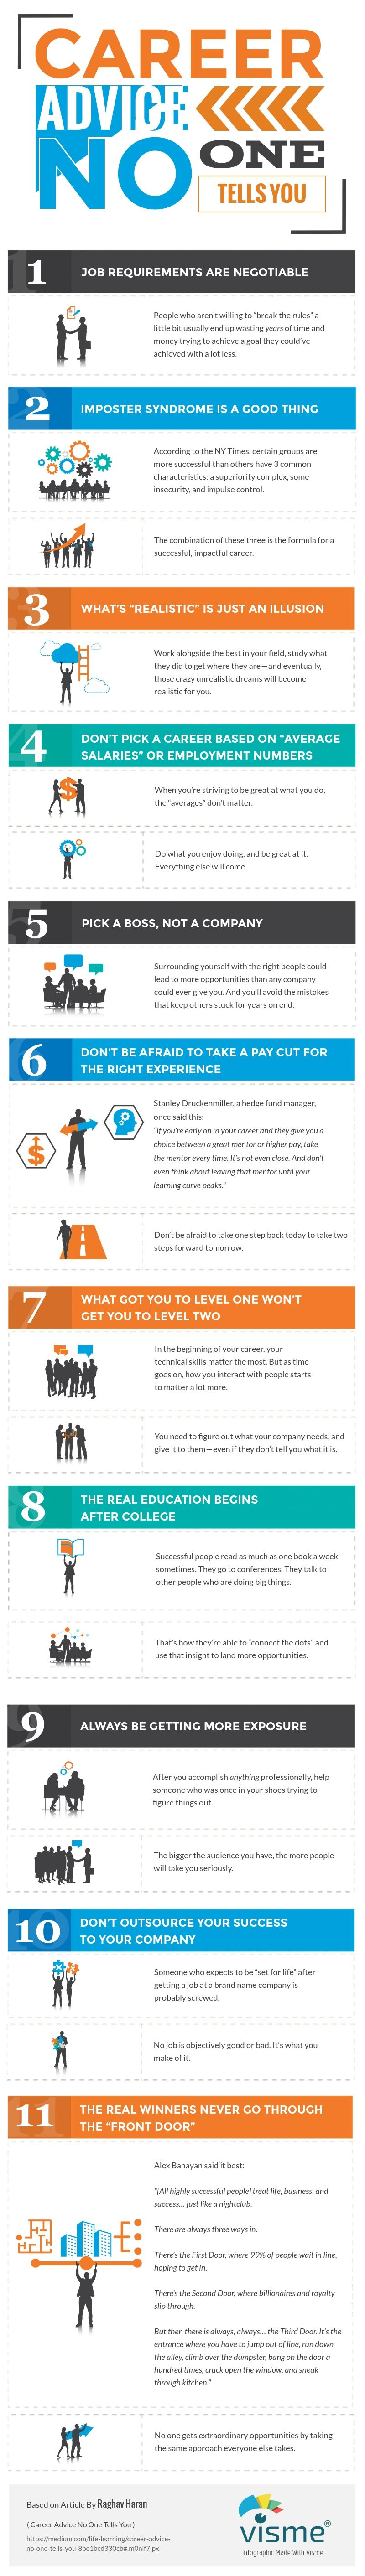 career advice no one tells you - Successful Career How To Be Successful In Career In Life